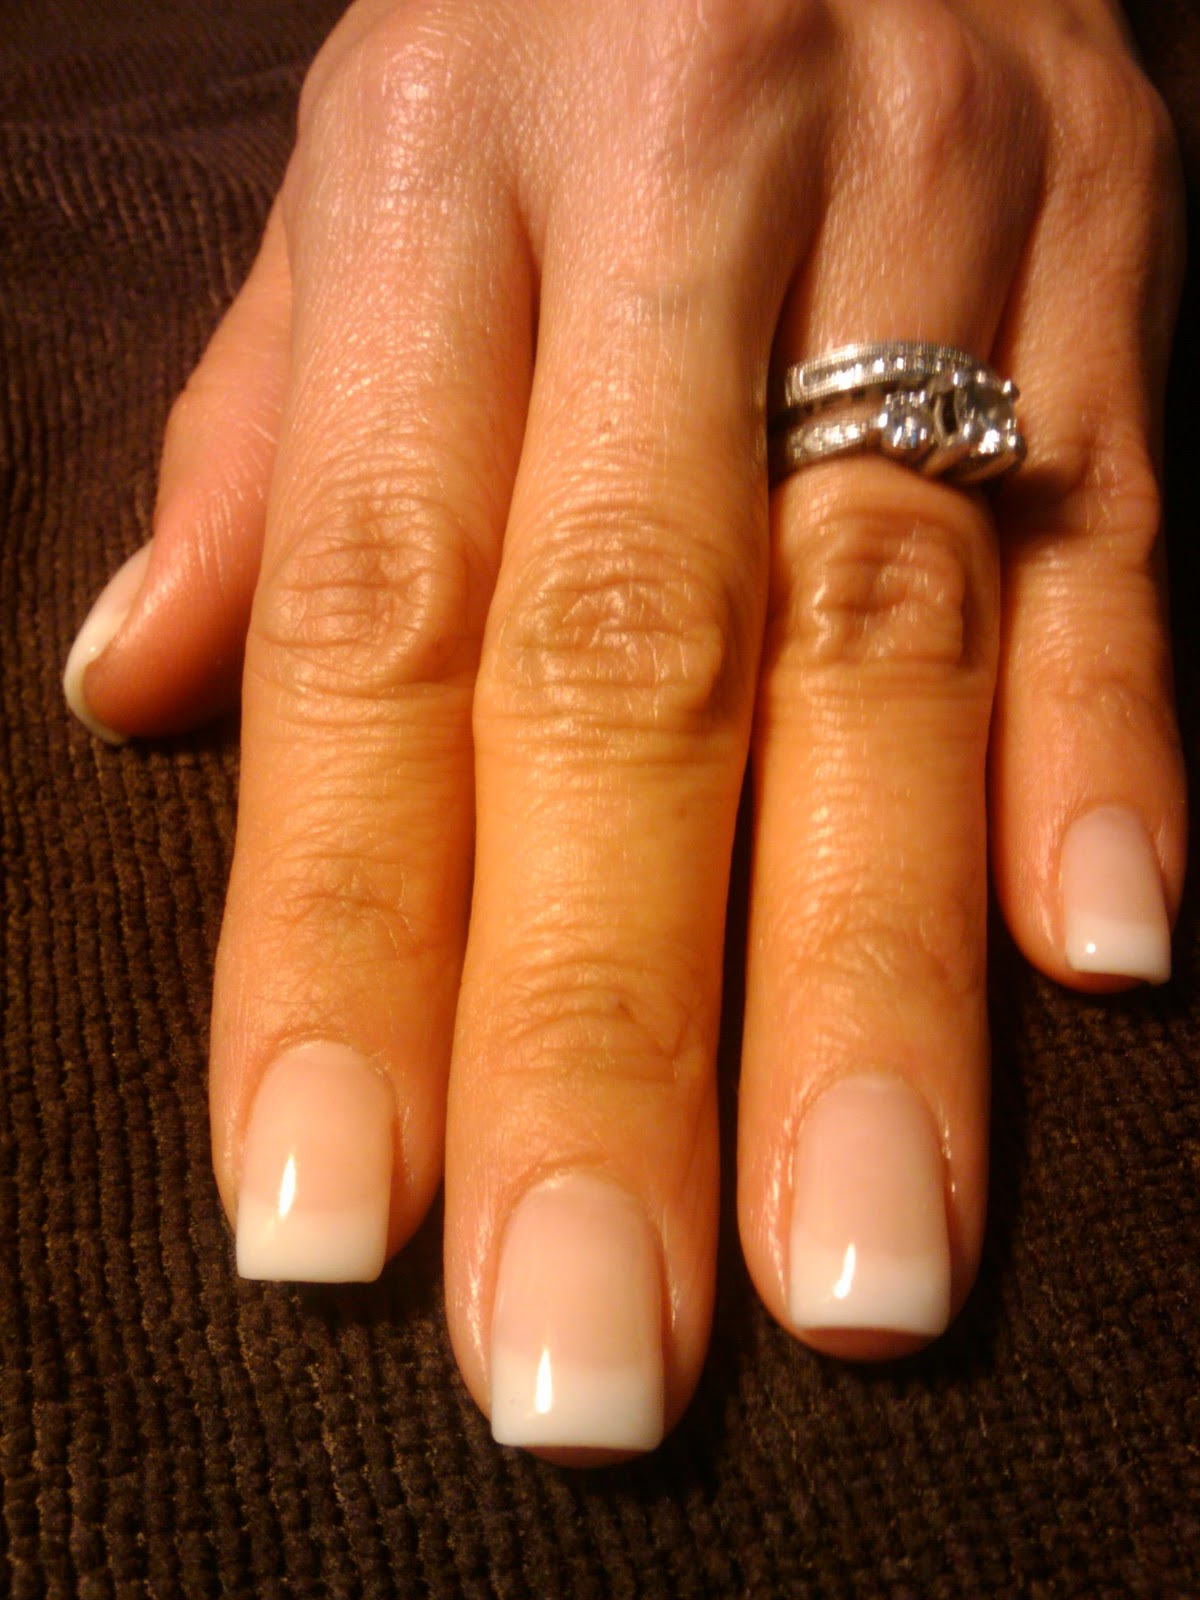 Let's Make Your Nails Pretty: Pink And White Gel Overlay